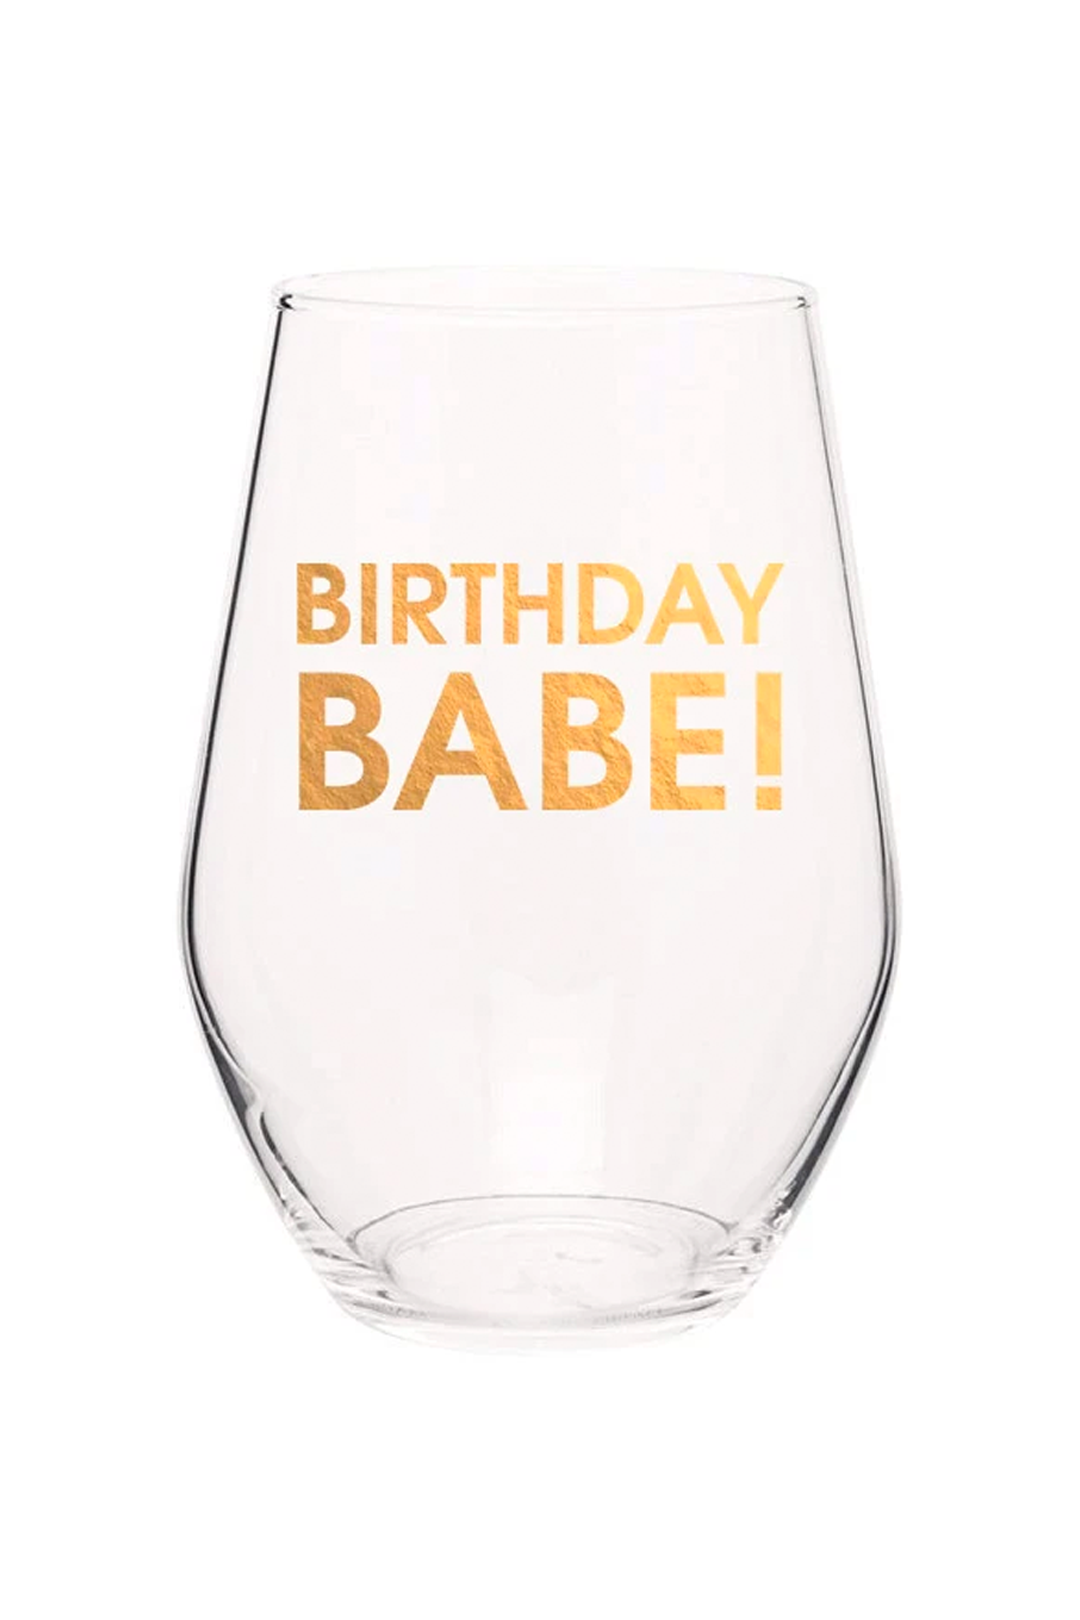 BIRTHDAY BABE! - GOLD FOIL STEMLESS WINE GLASS